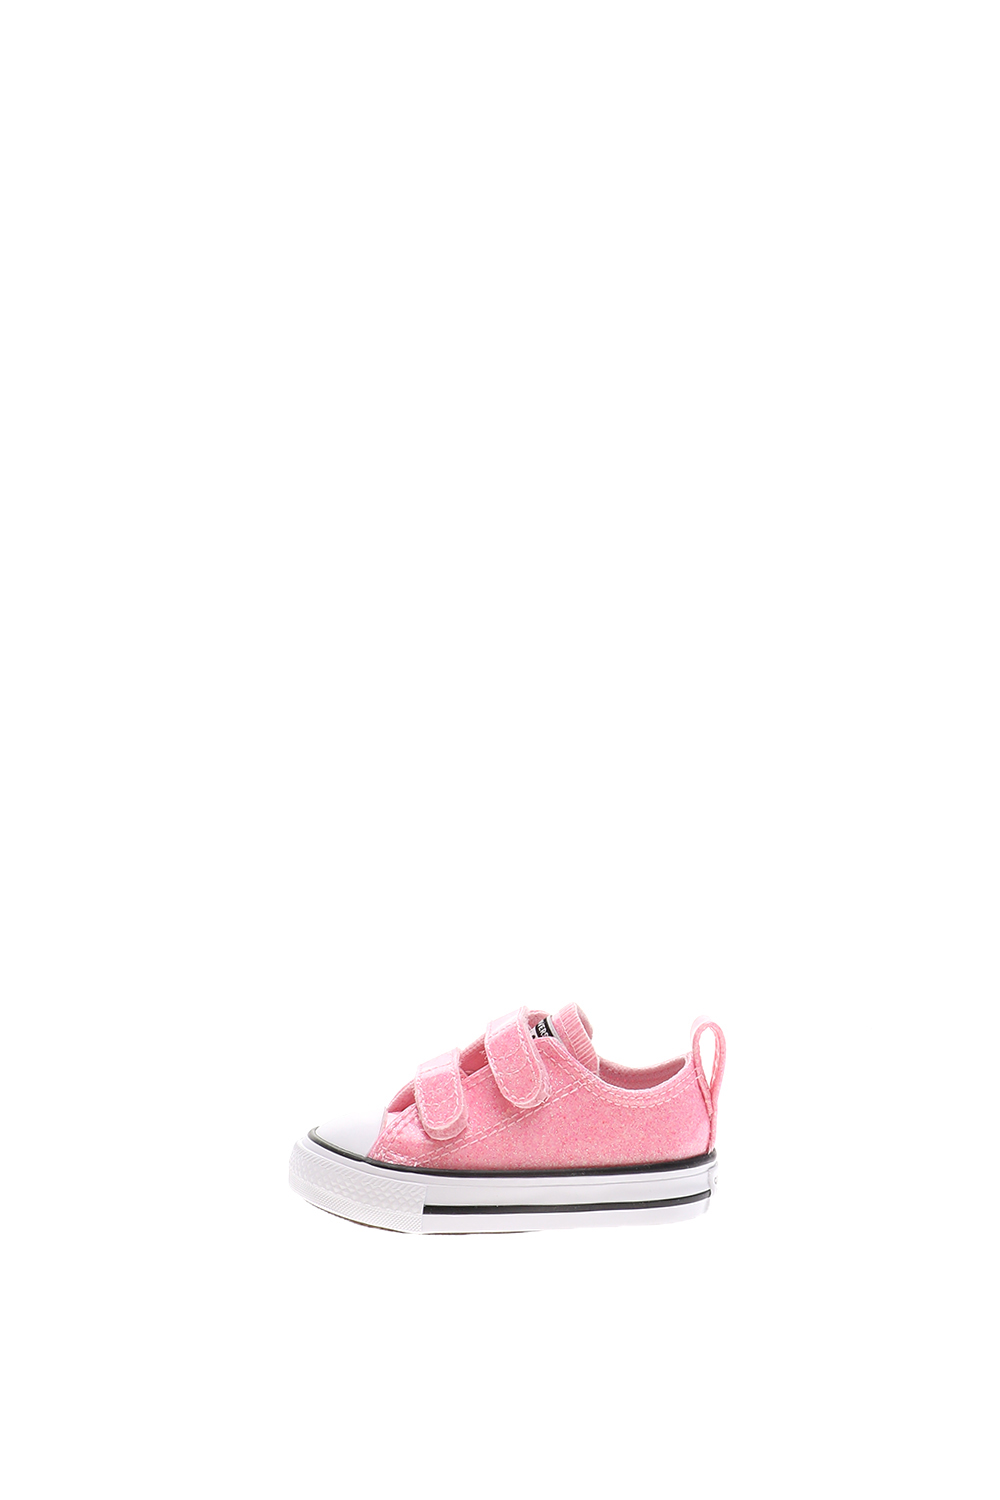 CONVERSE – Βρεφικά sneakers CHUCK TAYLOR ALL STAR 2V COATE ροζ